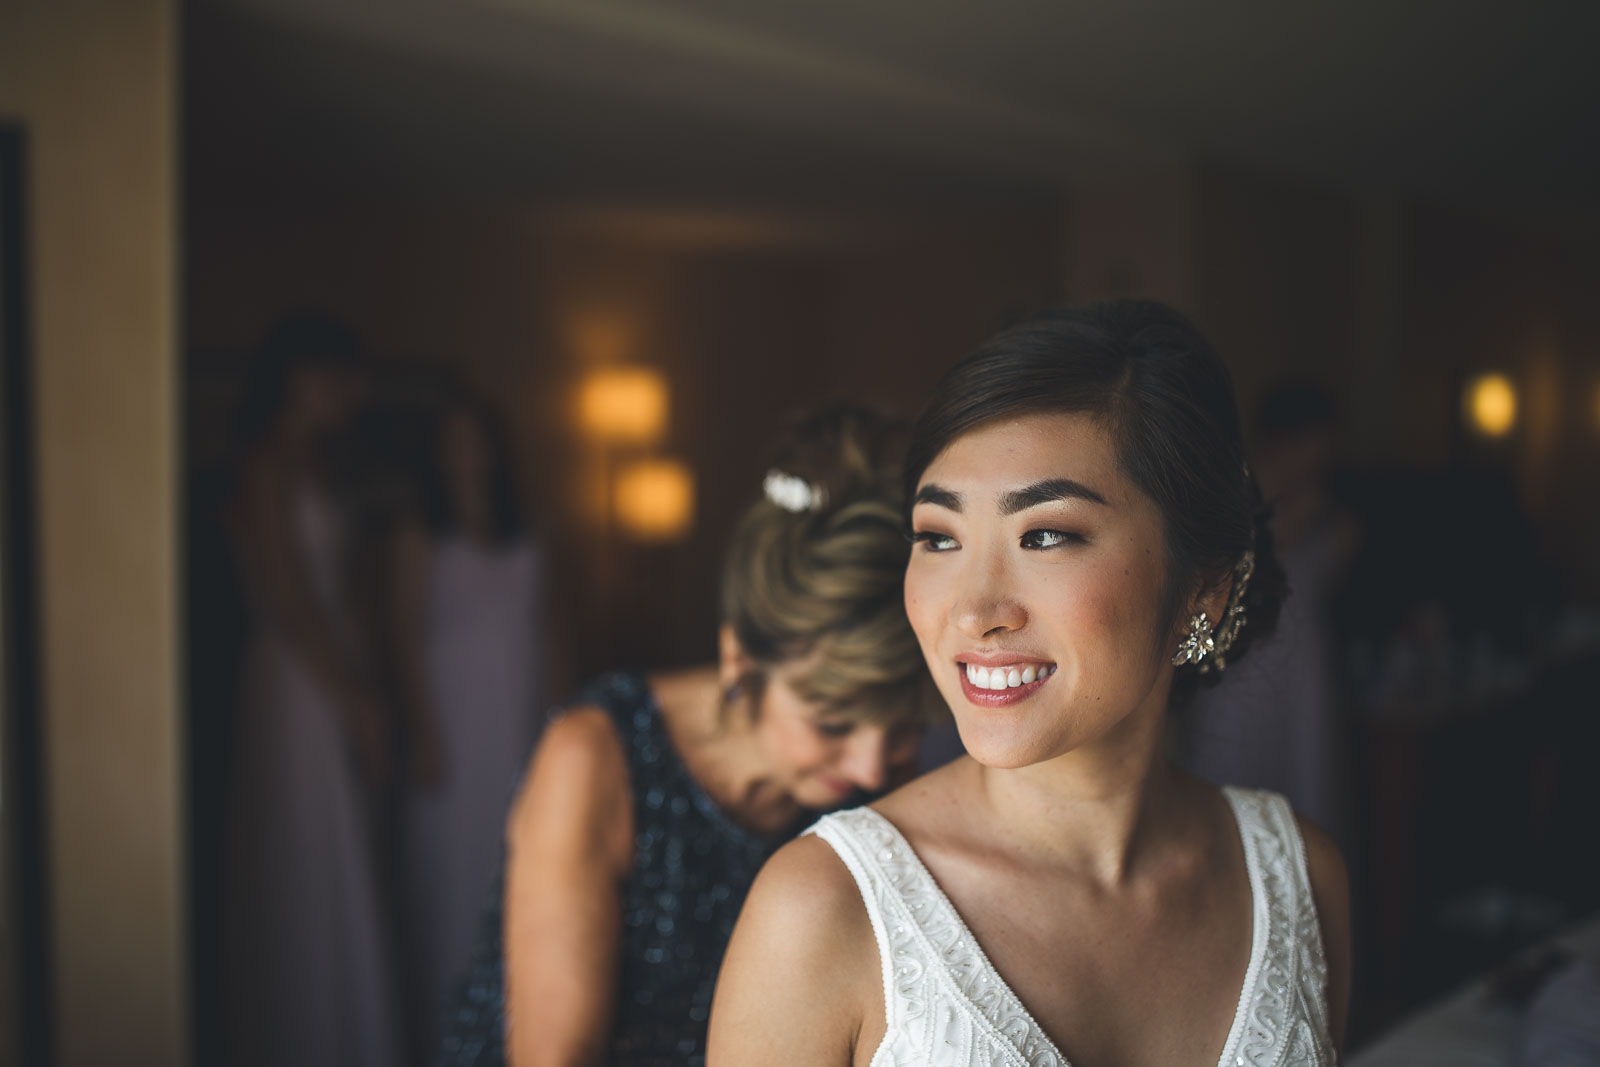 Bride gets dressed zipped up by Mom